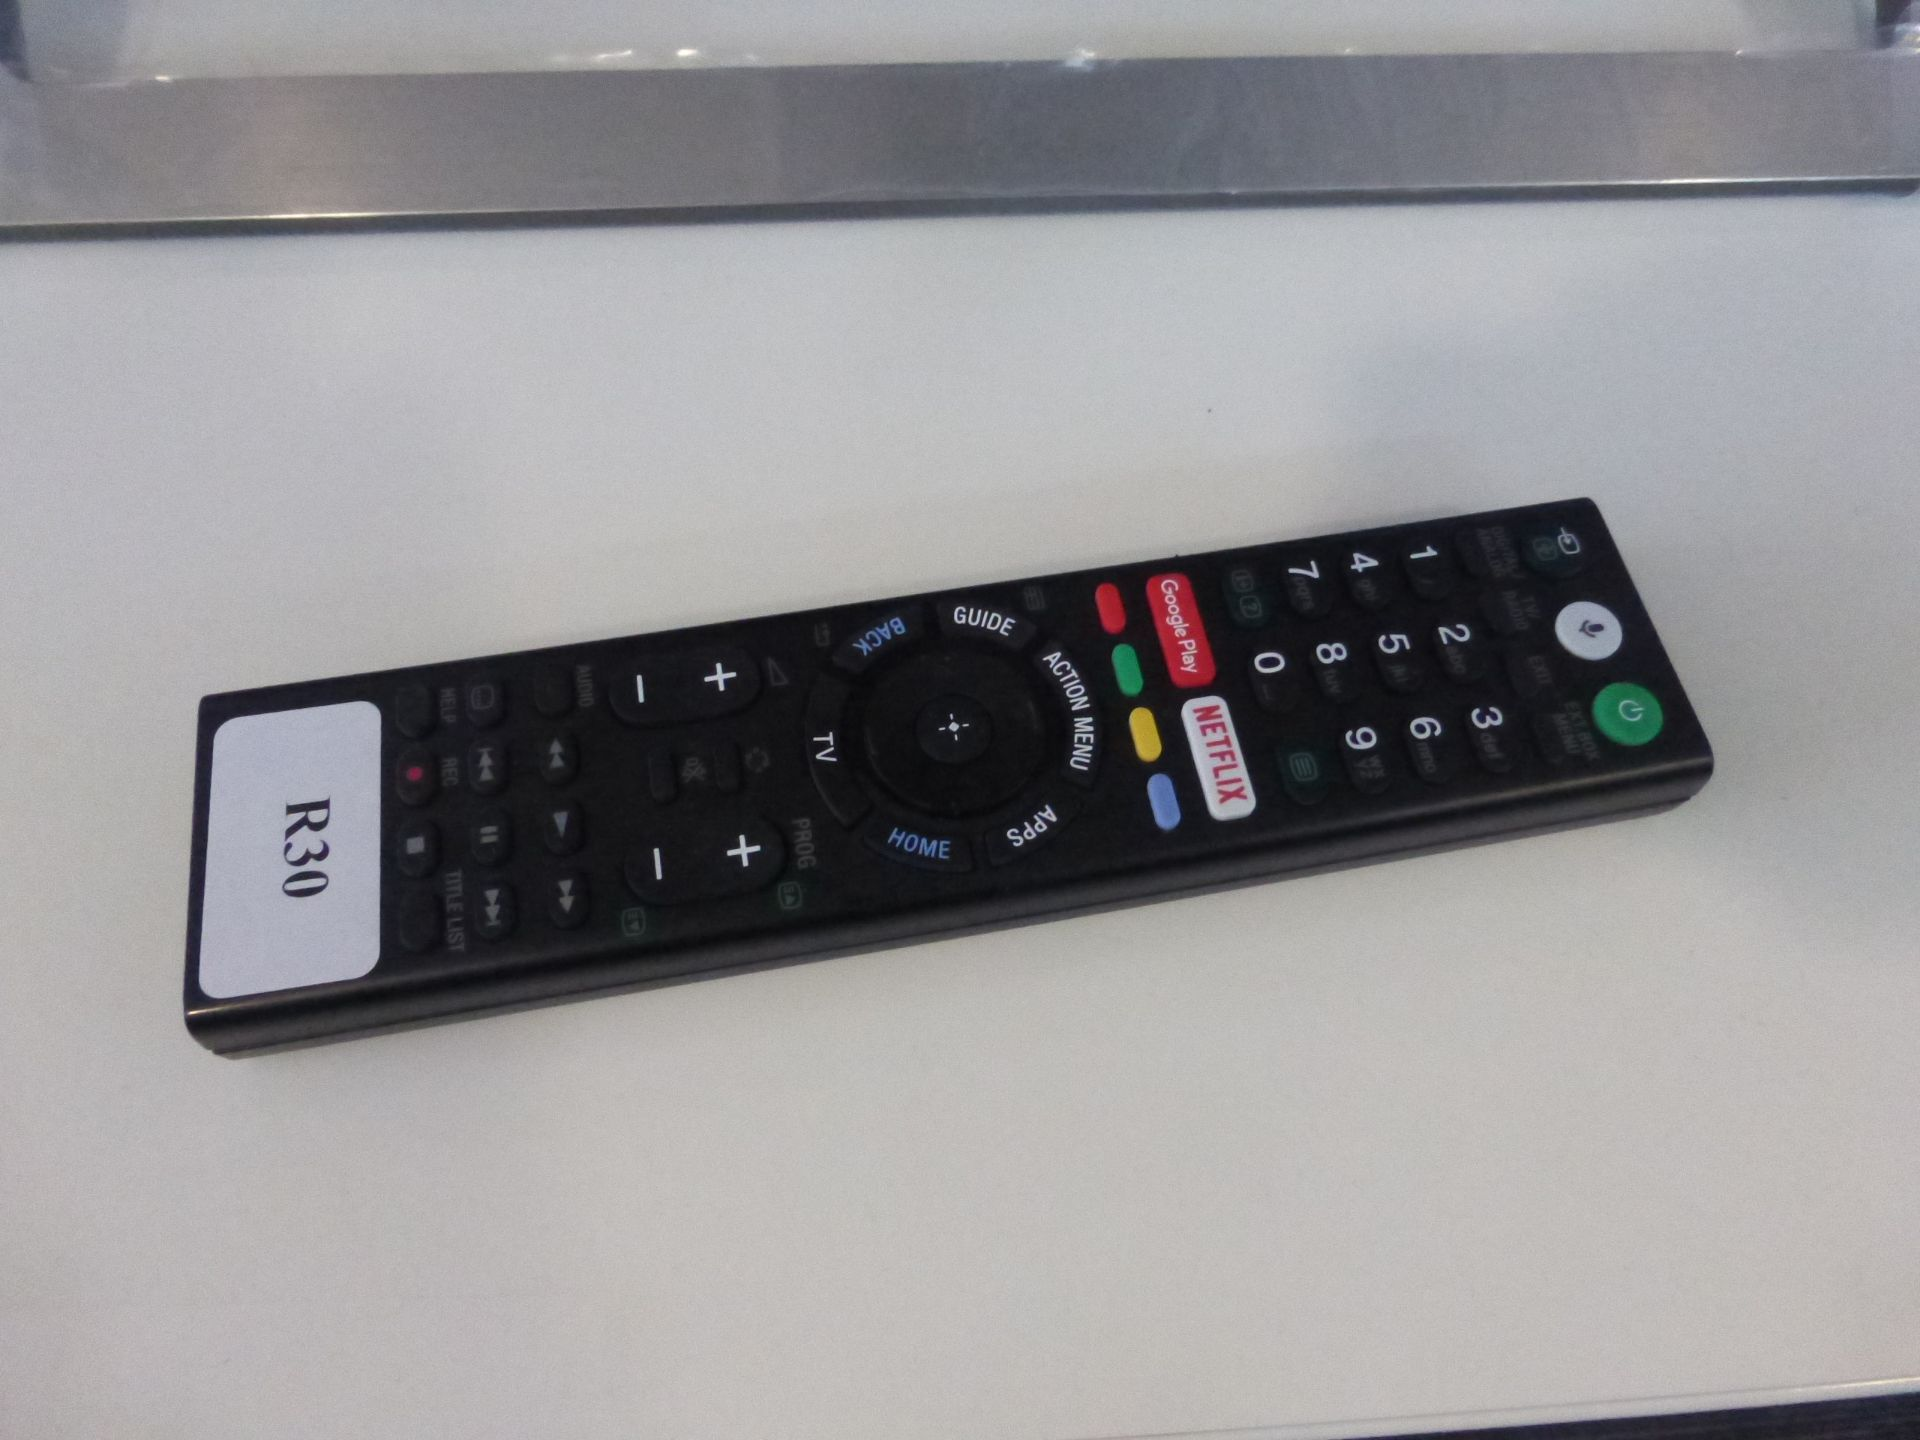 Sony 32'' TV Model: KDL-32WD754, includes remote (R30) and box (B52) Screen has no visible damage, - Image 2 of 2